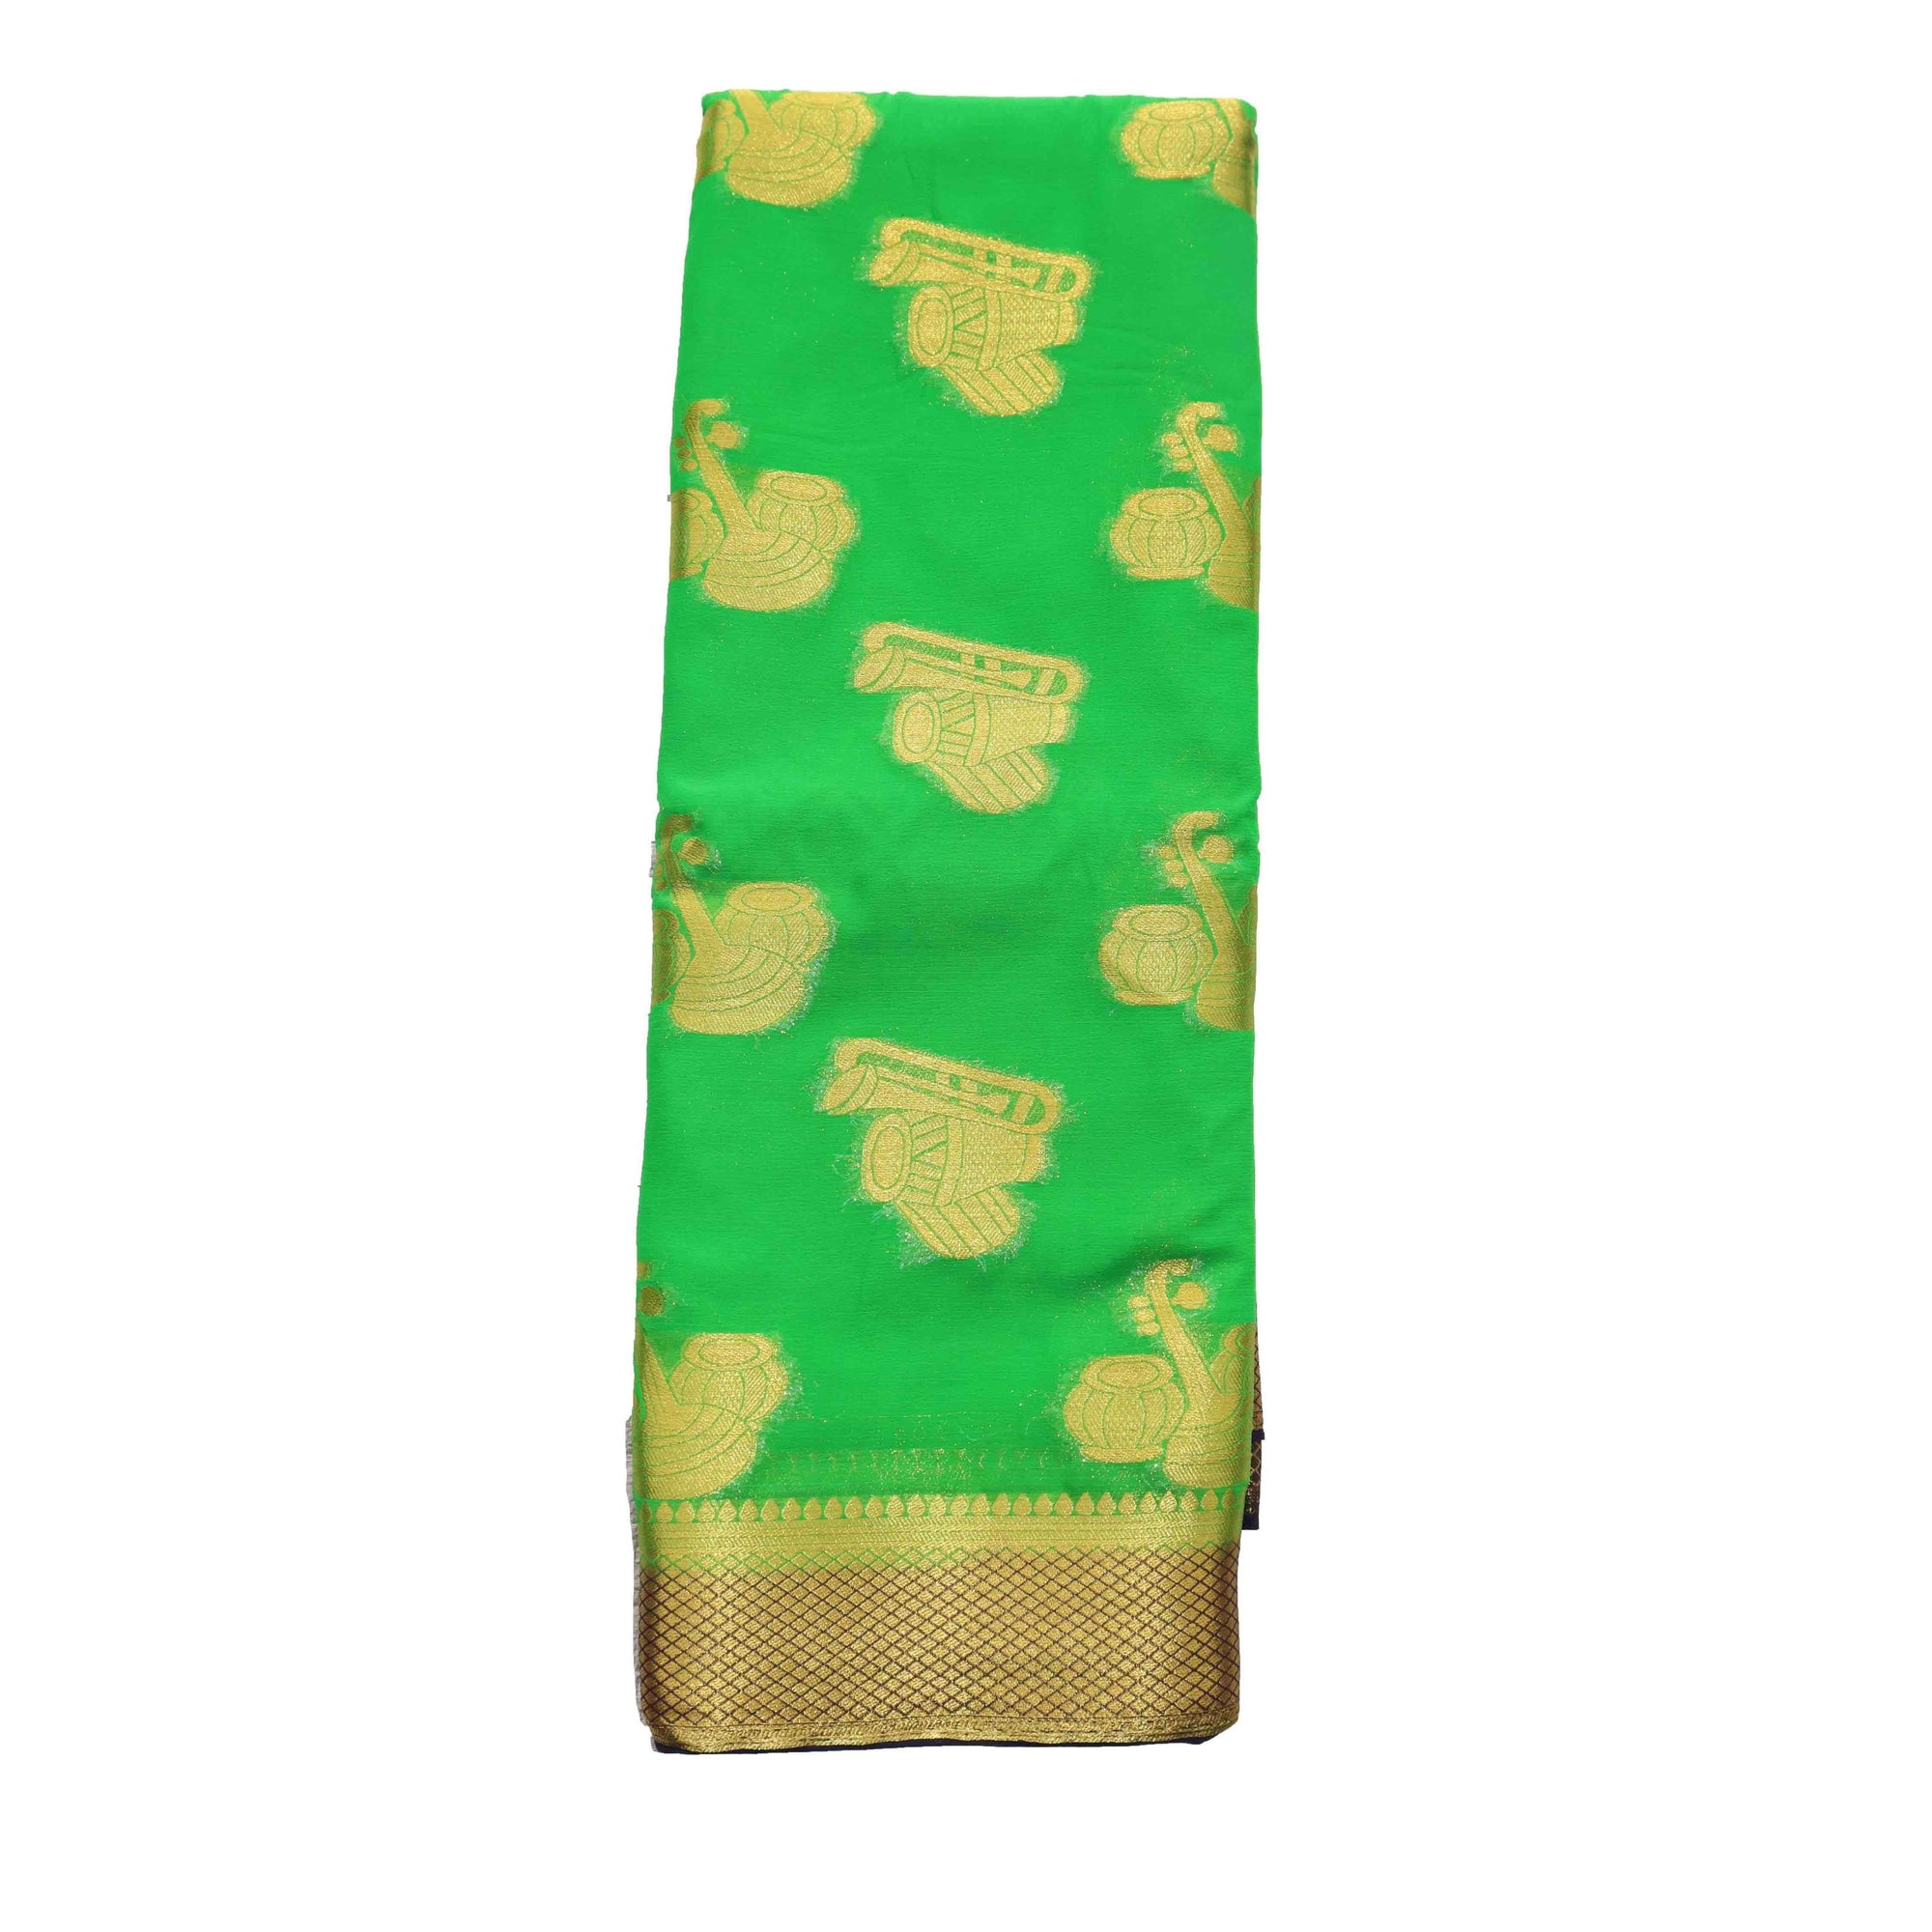 arars Women's kanchipuram kanjivaram pattu style mysore chiffon silk saree with blouse (389,green)